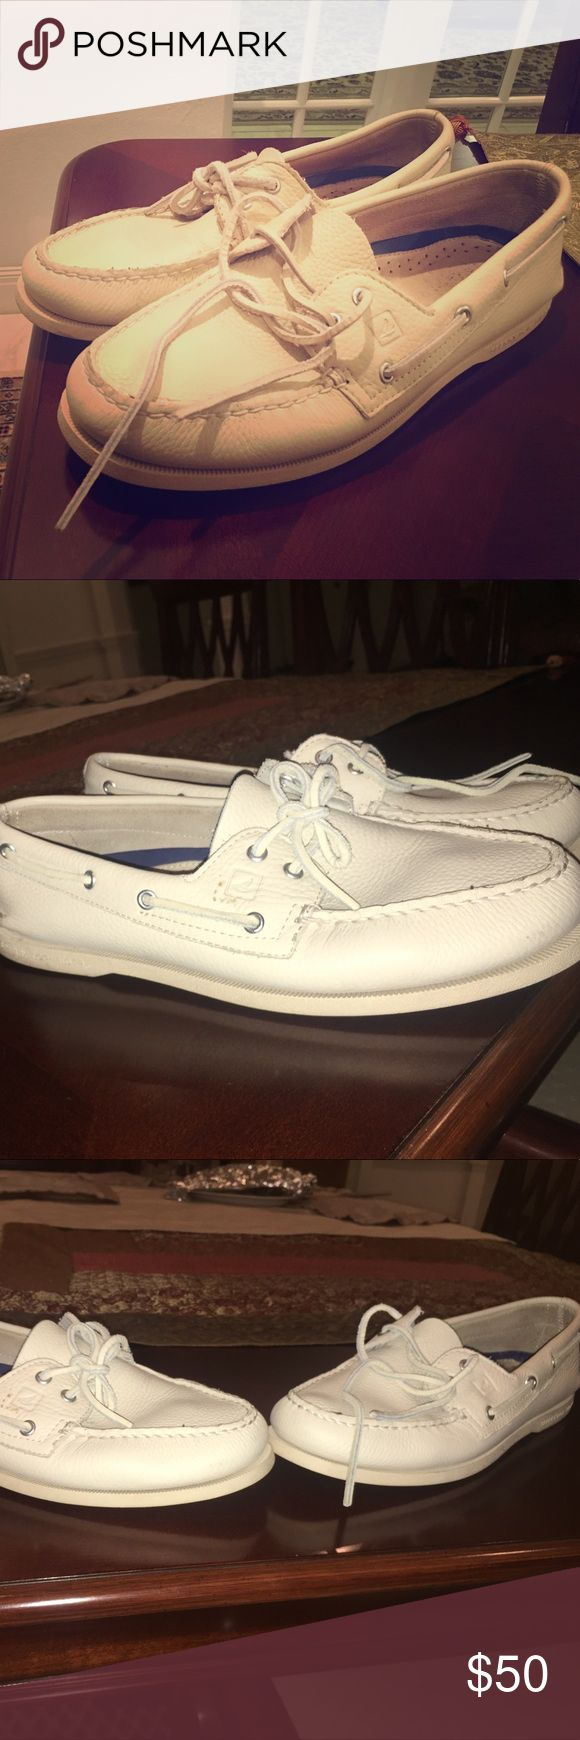 Sperry topsider Men's Boat shoes all white Size 11.5 sperry topsider white boat shoes. Sperry Top-Sider Shoes Boat Shoes